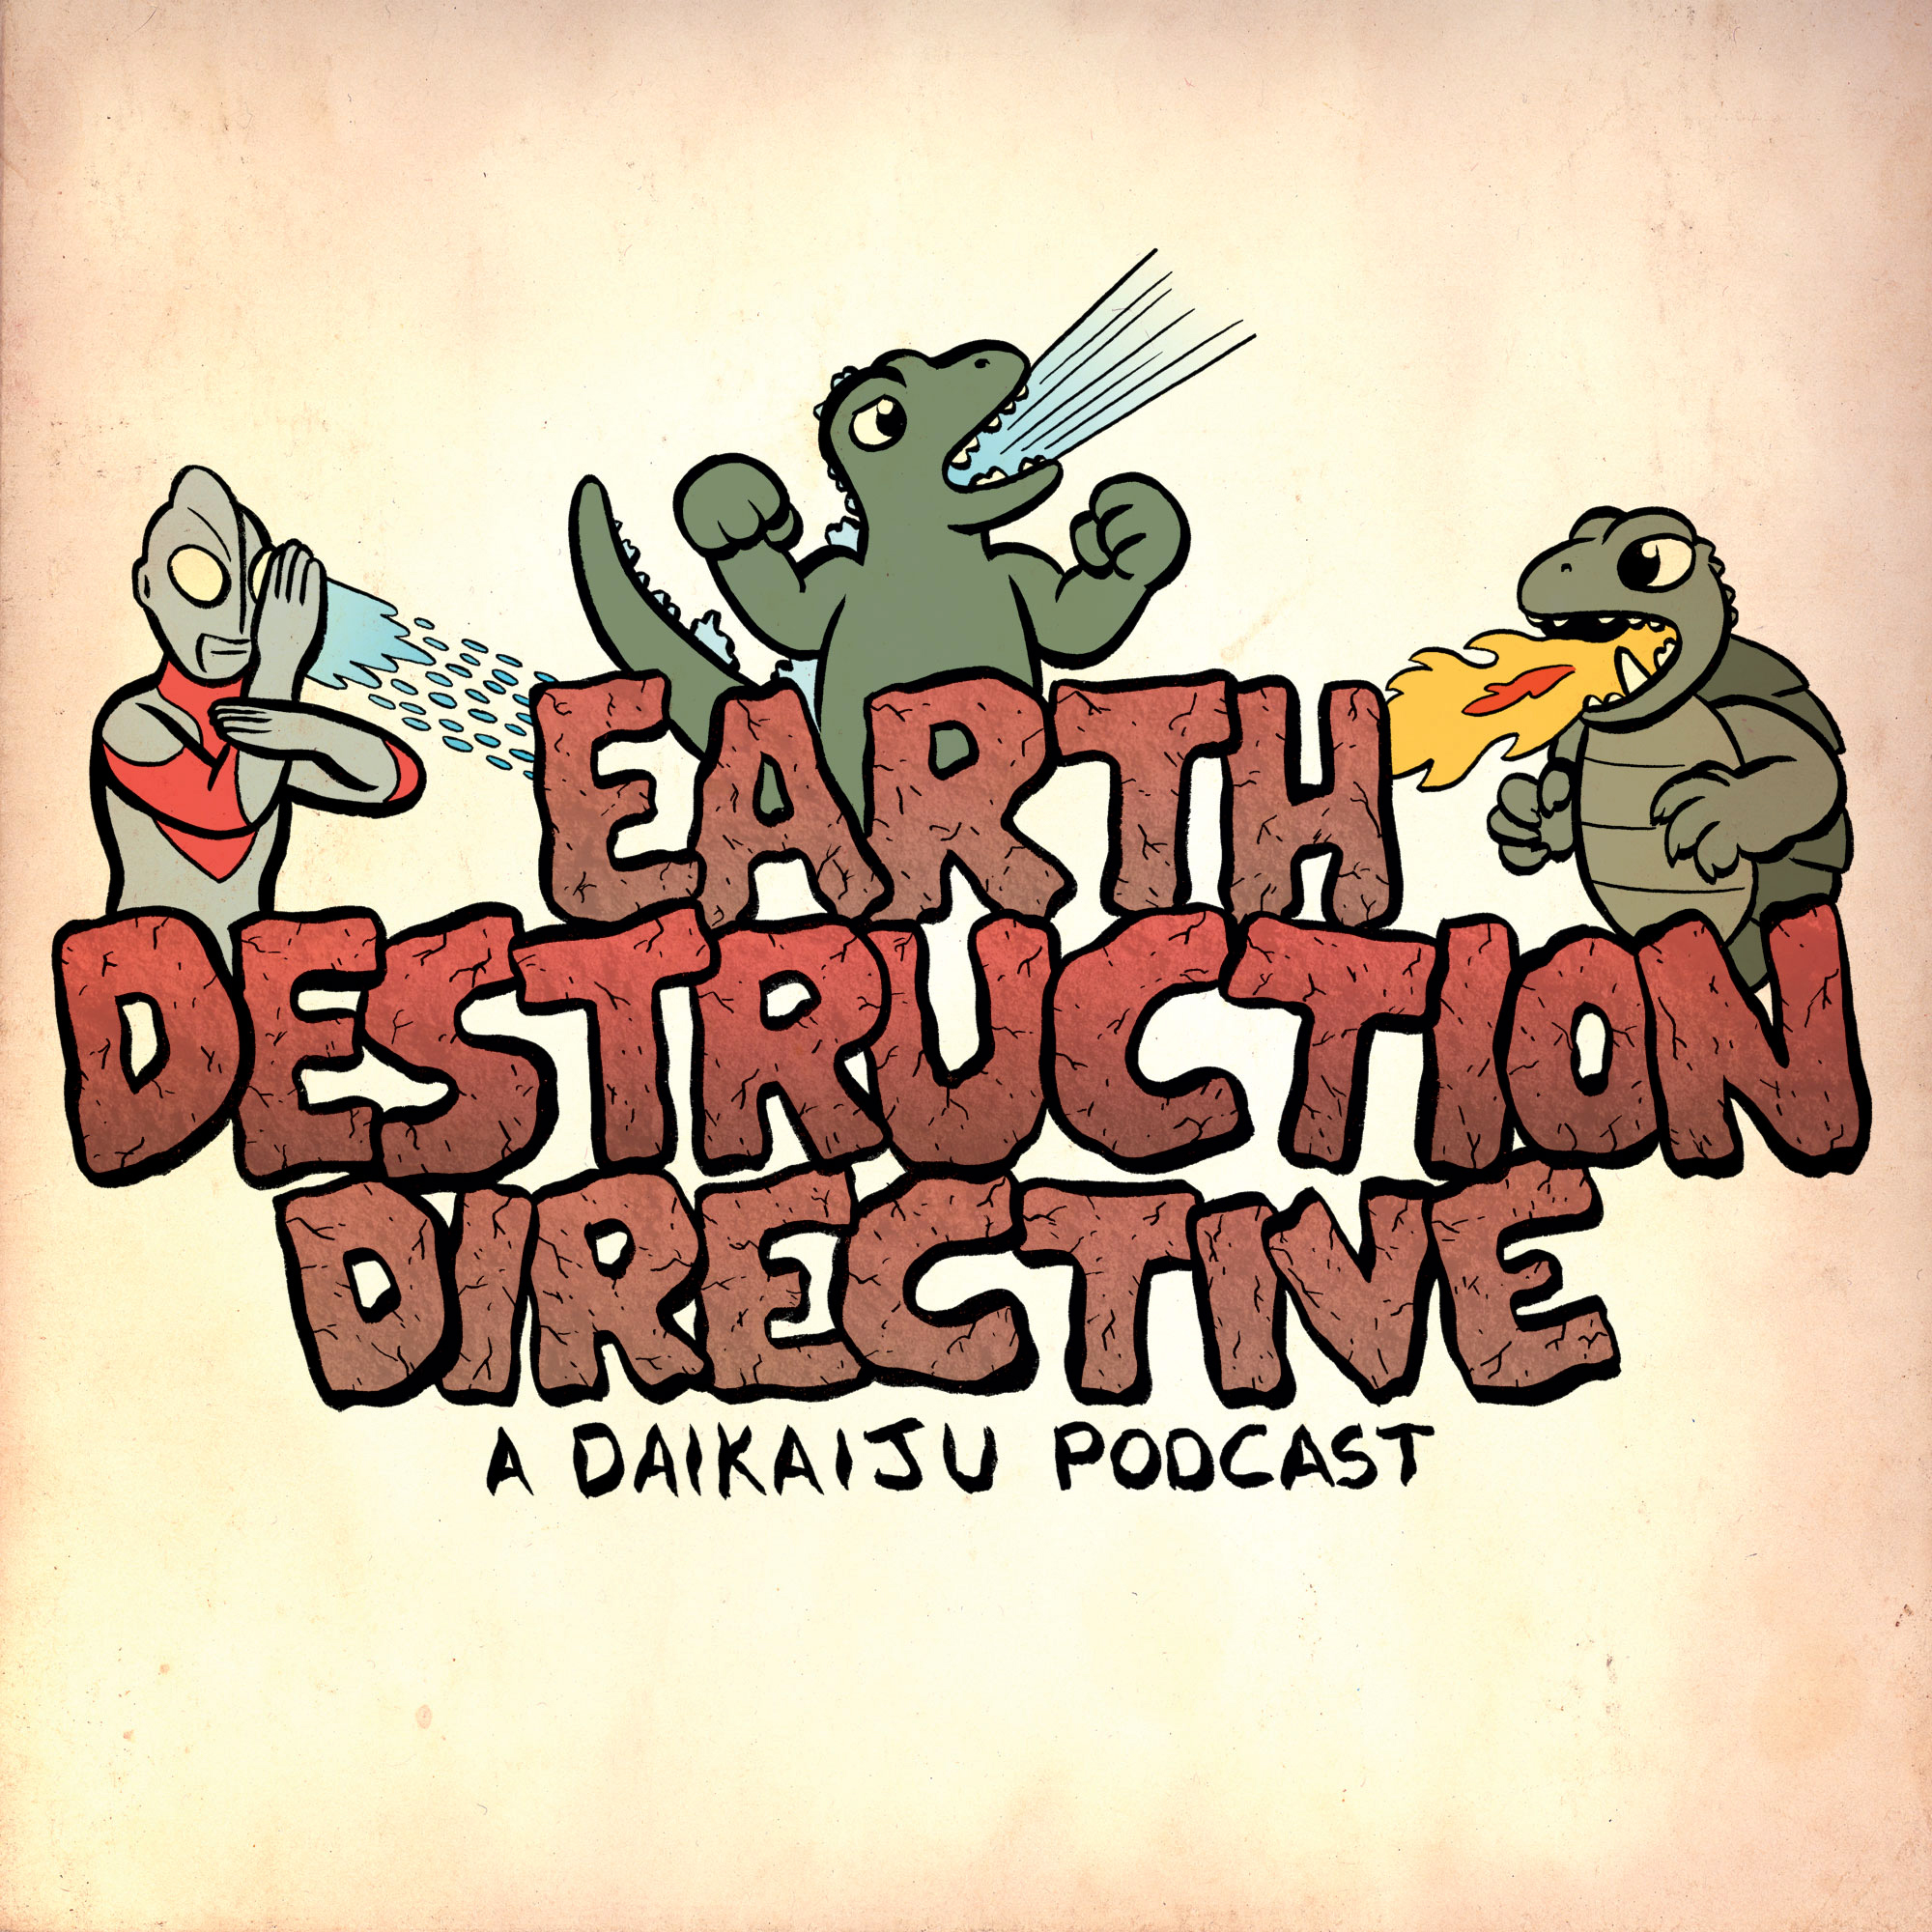 Earth Destruction Directive